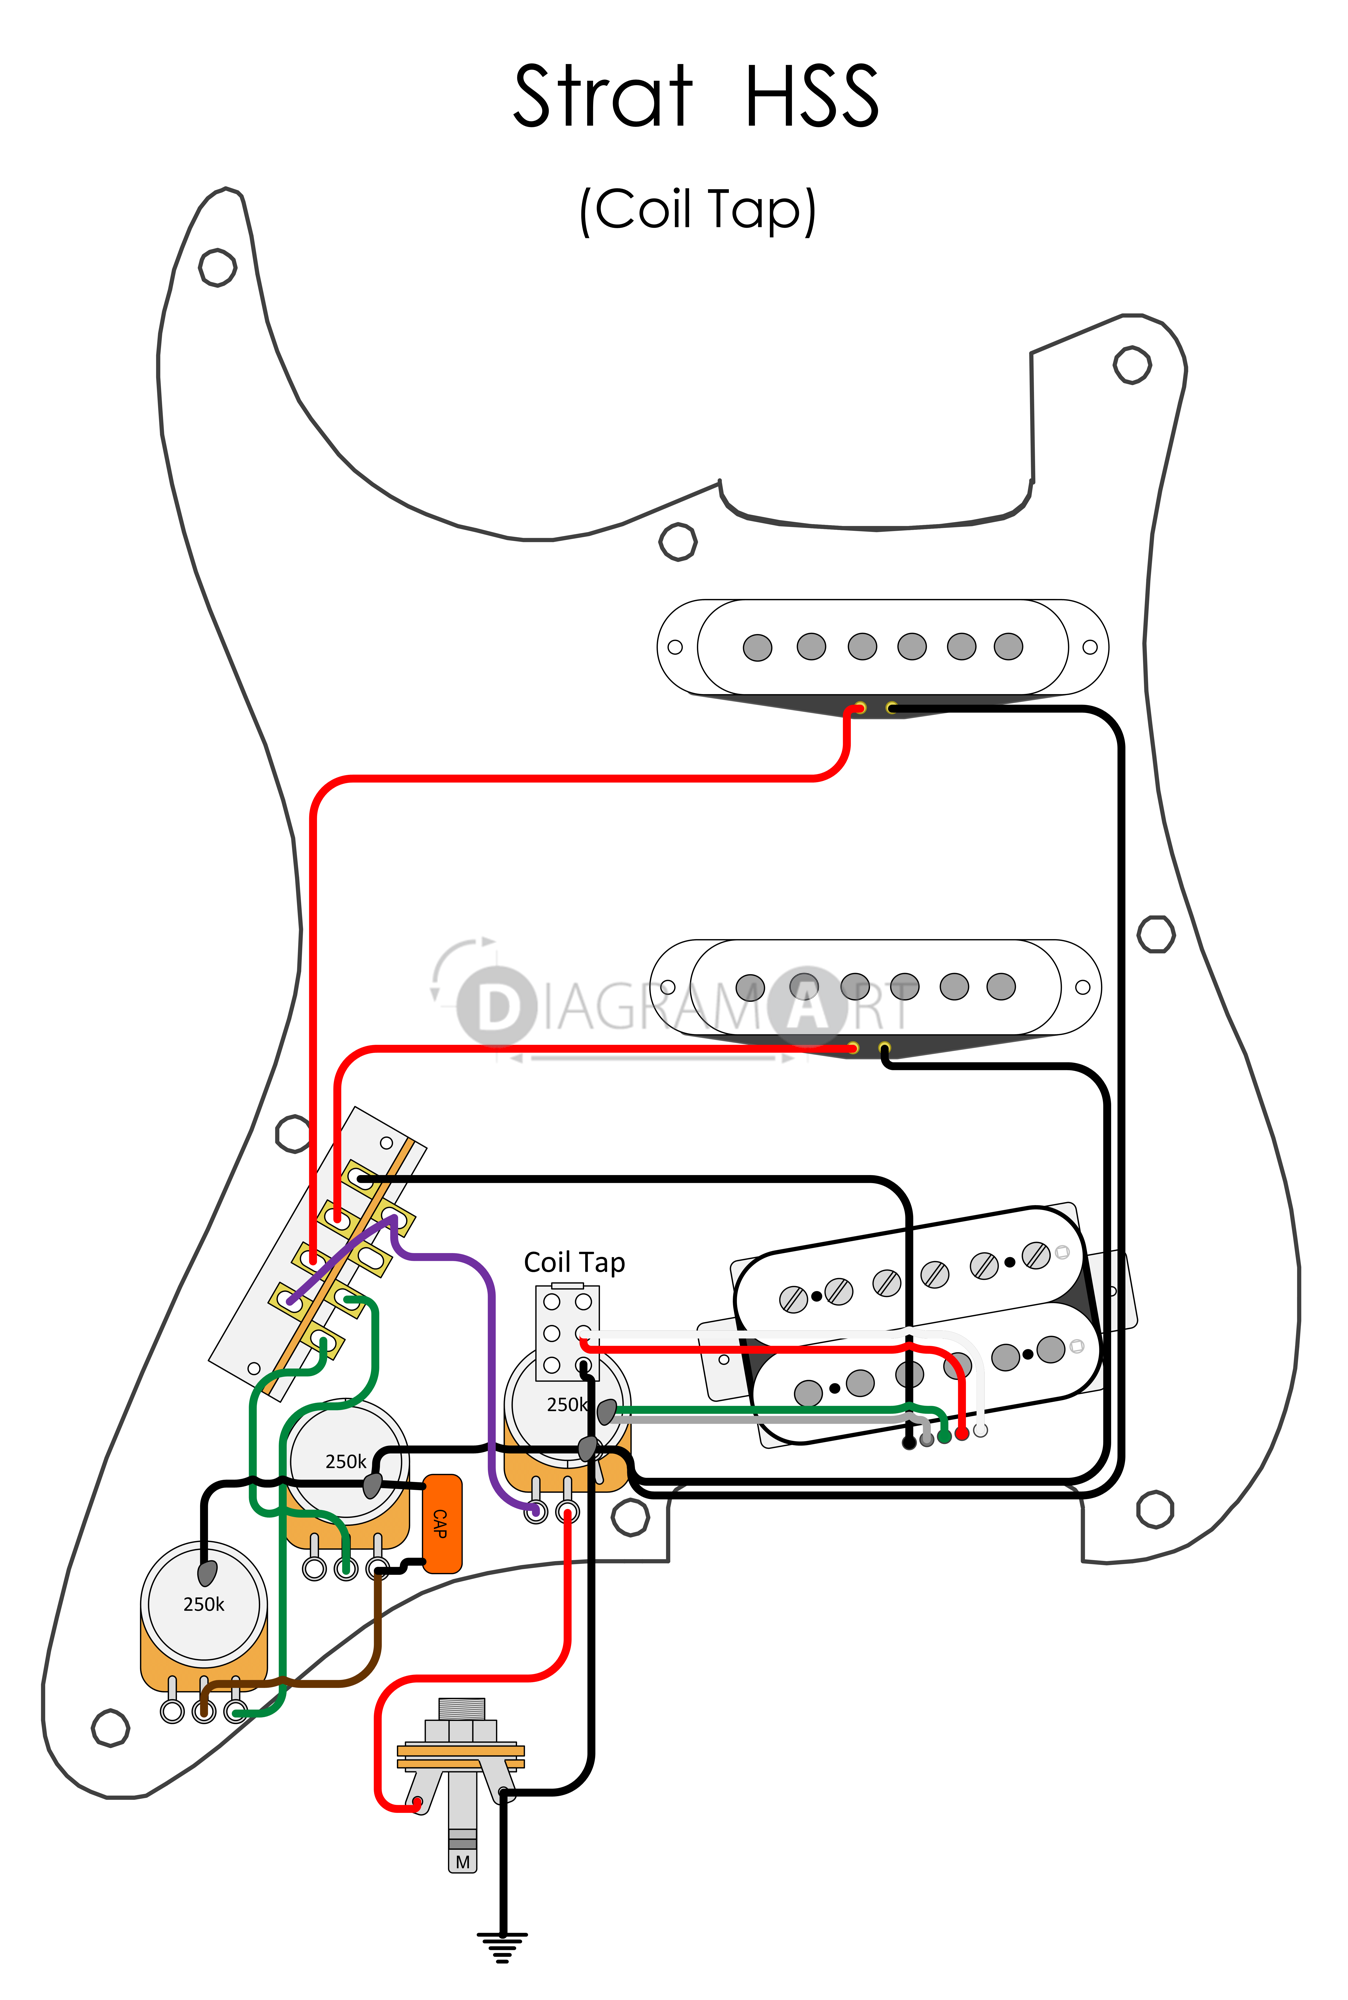 Jackson Flying V Wiring - Diagram Data Blog on jackson performer wiring, jca20h diagram, jackson electric guitar schematic, jackson king v schematic, jackson guitar wiring schematics, jackson 3-way switches, jackson flying v wiring, guitar string diagram,